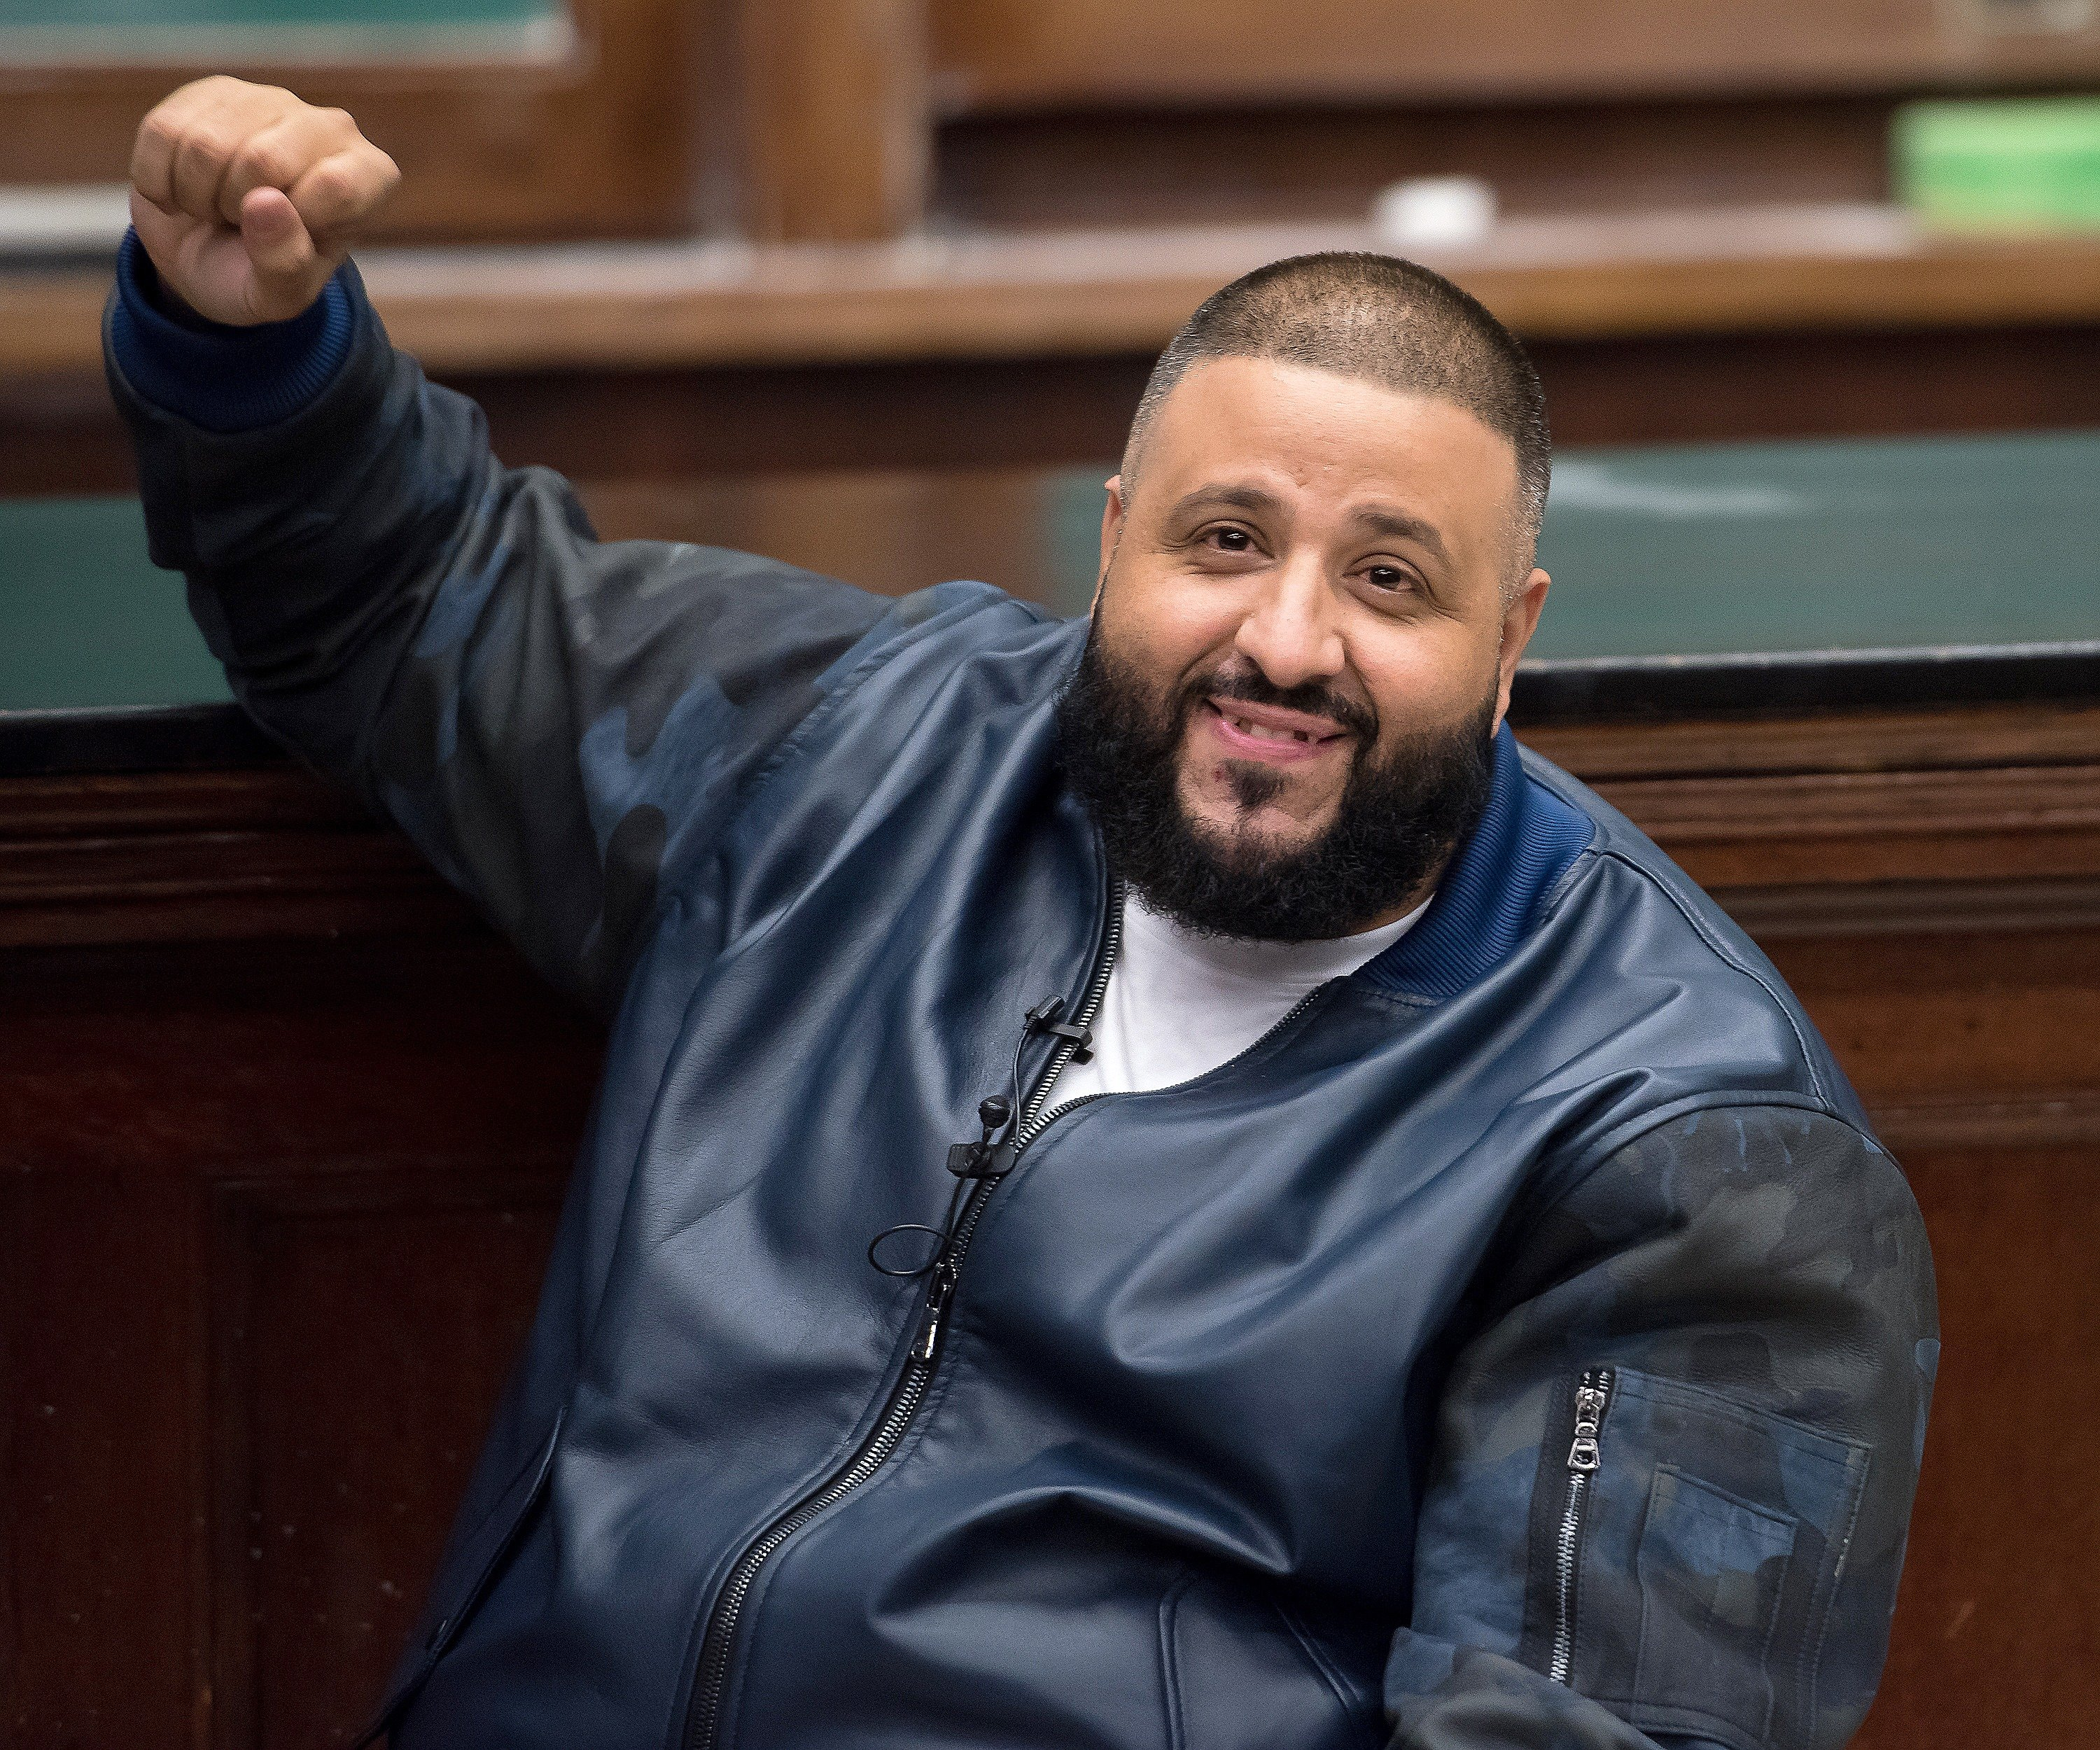 """DJ Khaled at the """"Keys To Success: A Conversation With Arianna Huffington"""" at Columbia University on December 8, 2016 in New York City.  Source: Getty Images"""